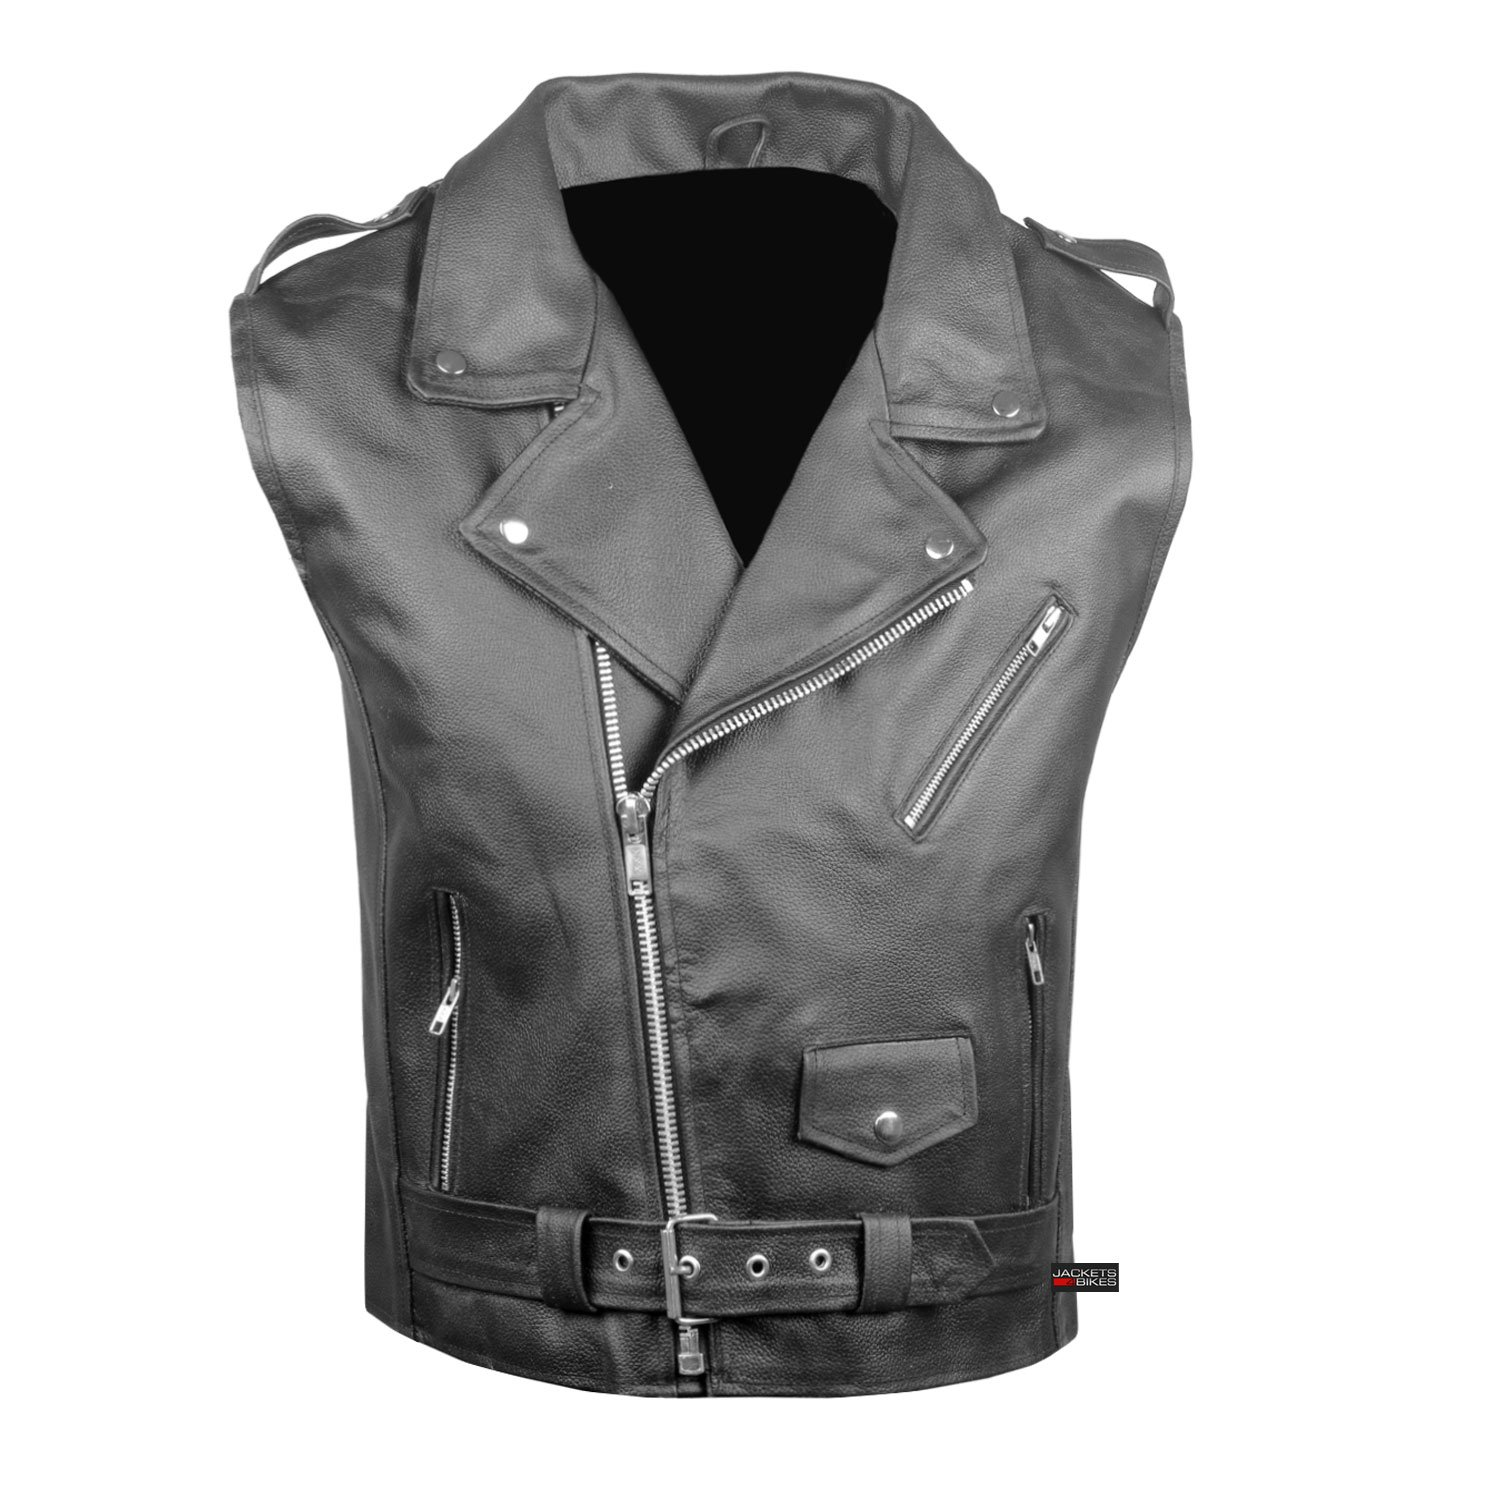 Men's Classic Leather Motorcycle Biker Concealed Carry Vintage Vest Black L by Jackets 4 Bikes